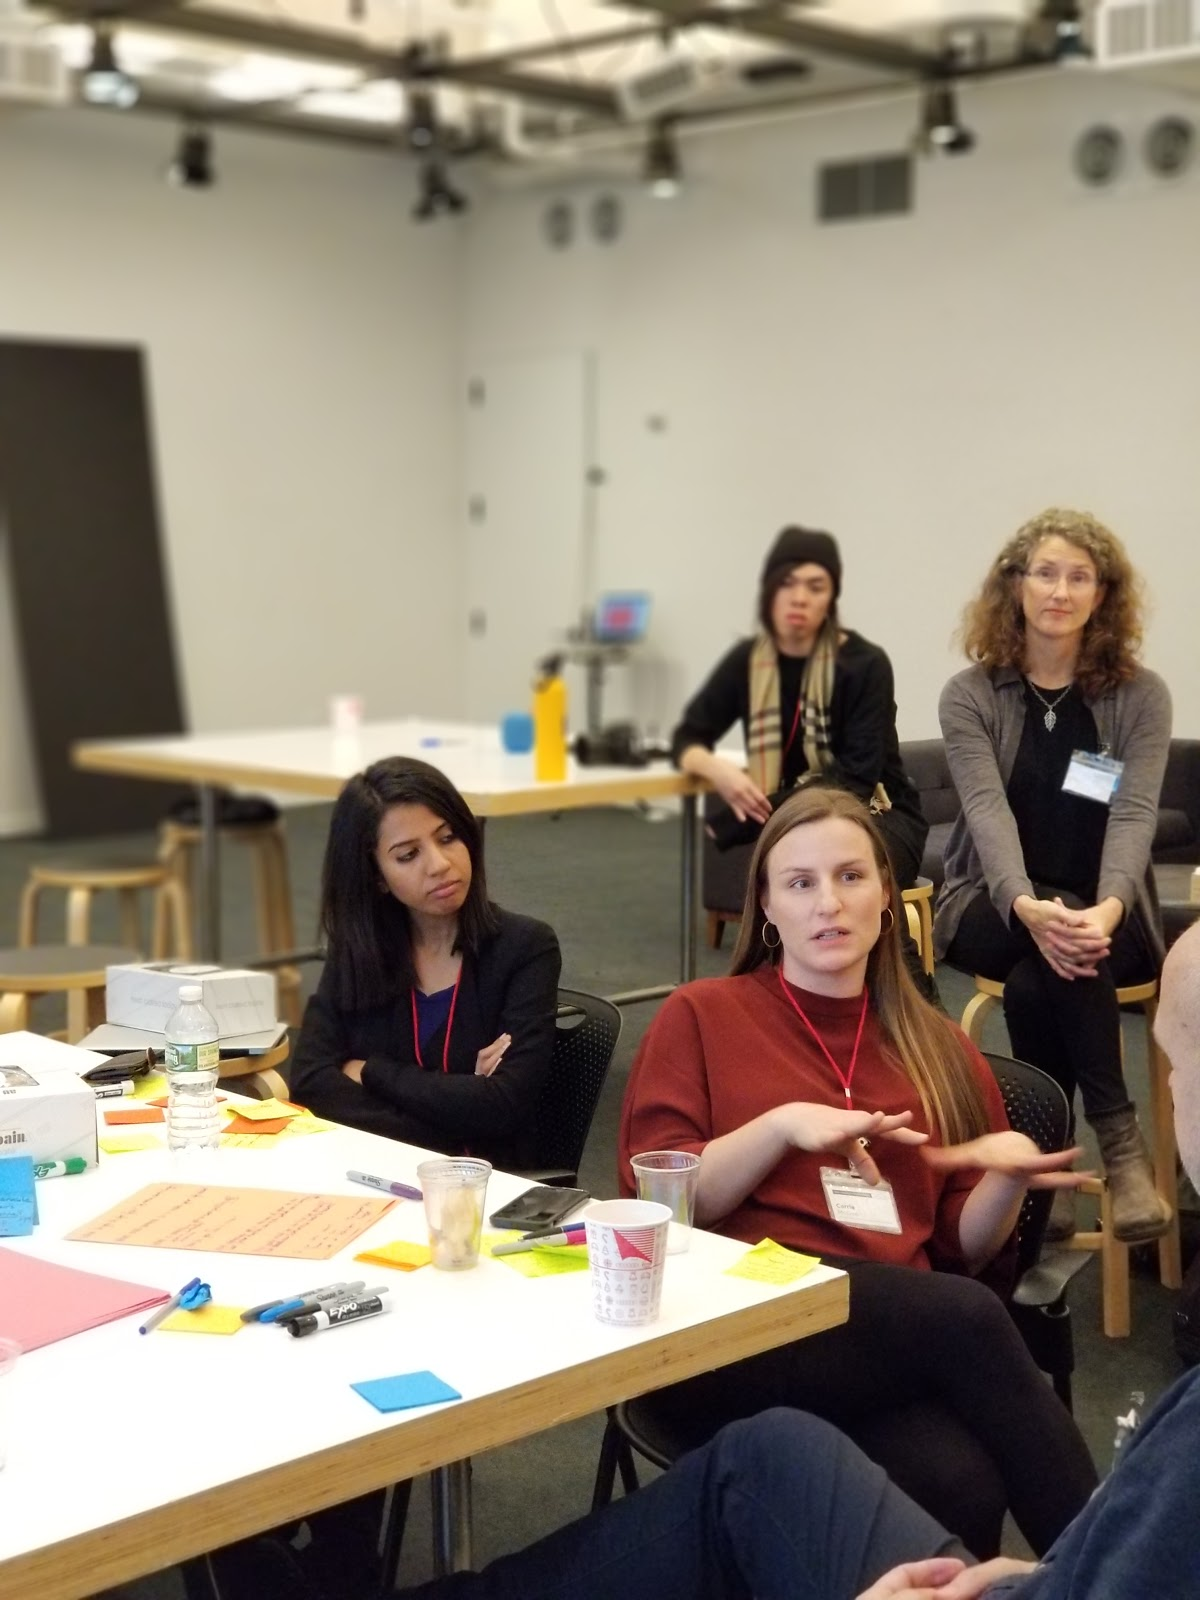 The Open IDEO Dementia Challenge Workshop in partnership with AARP held at SY Partners, New York, November 2017